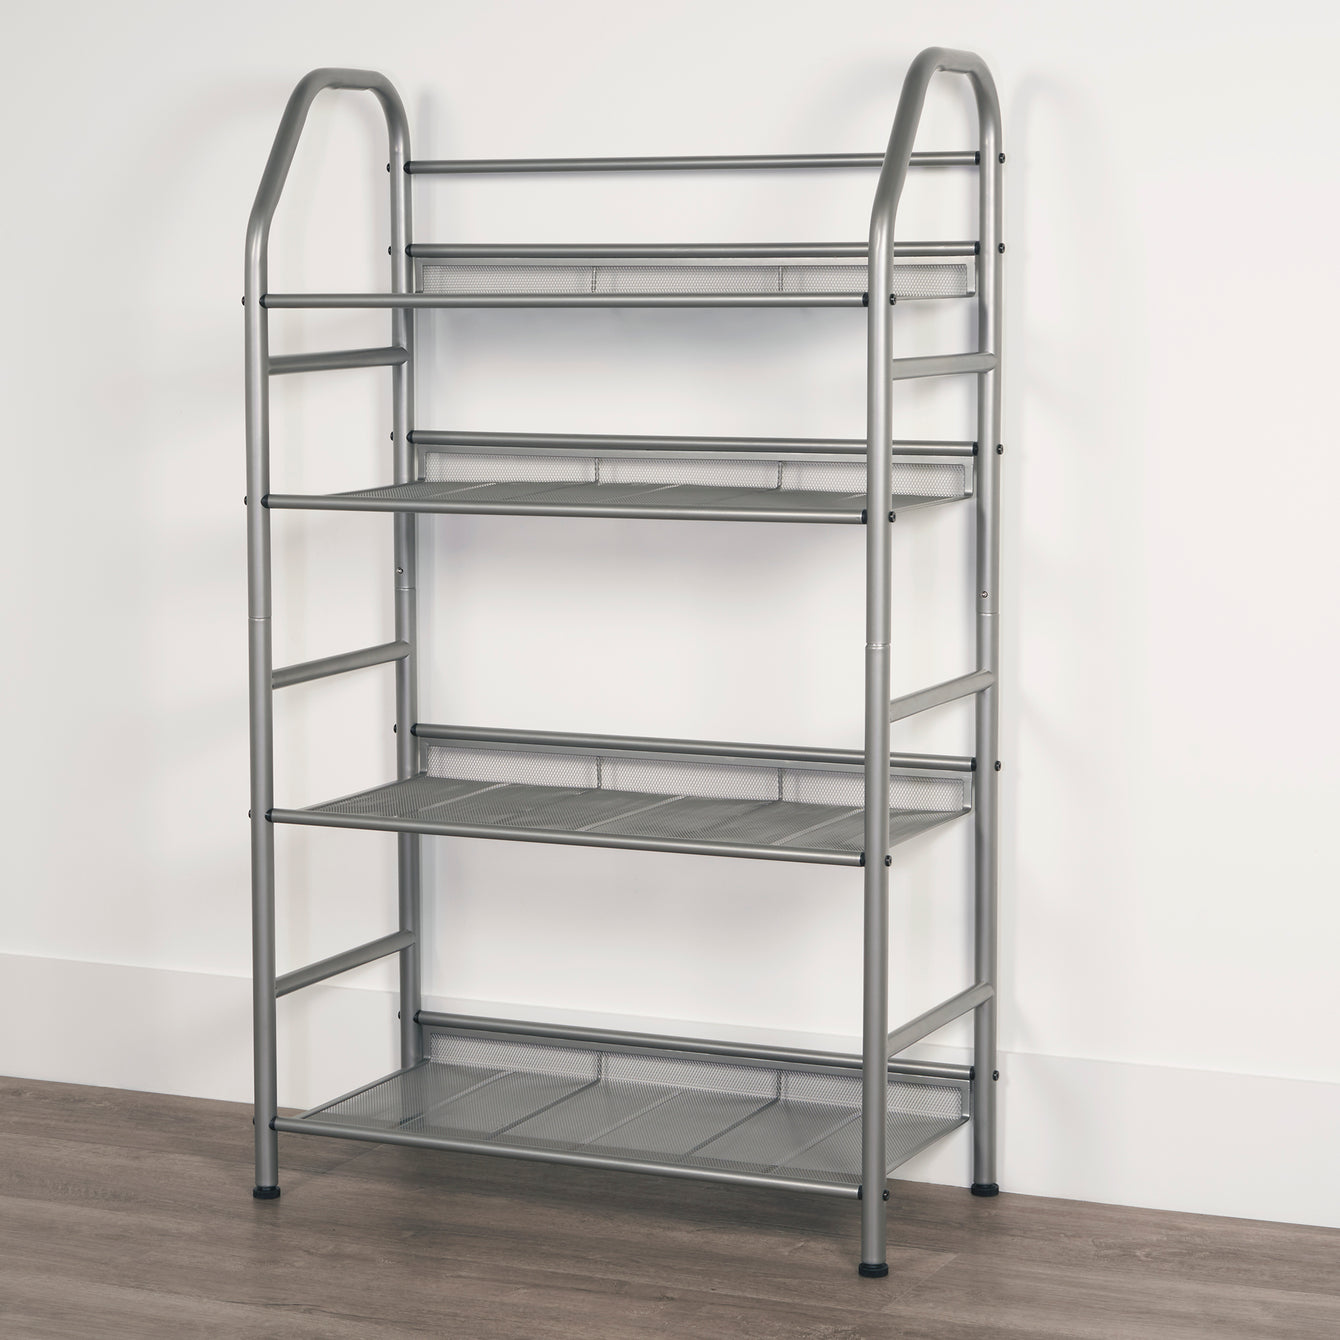 4 Tier Metal Home Storage Organizer with Bins